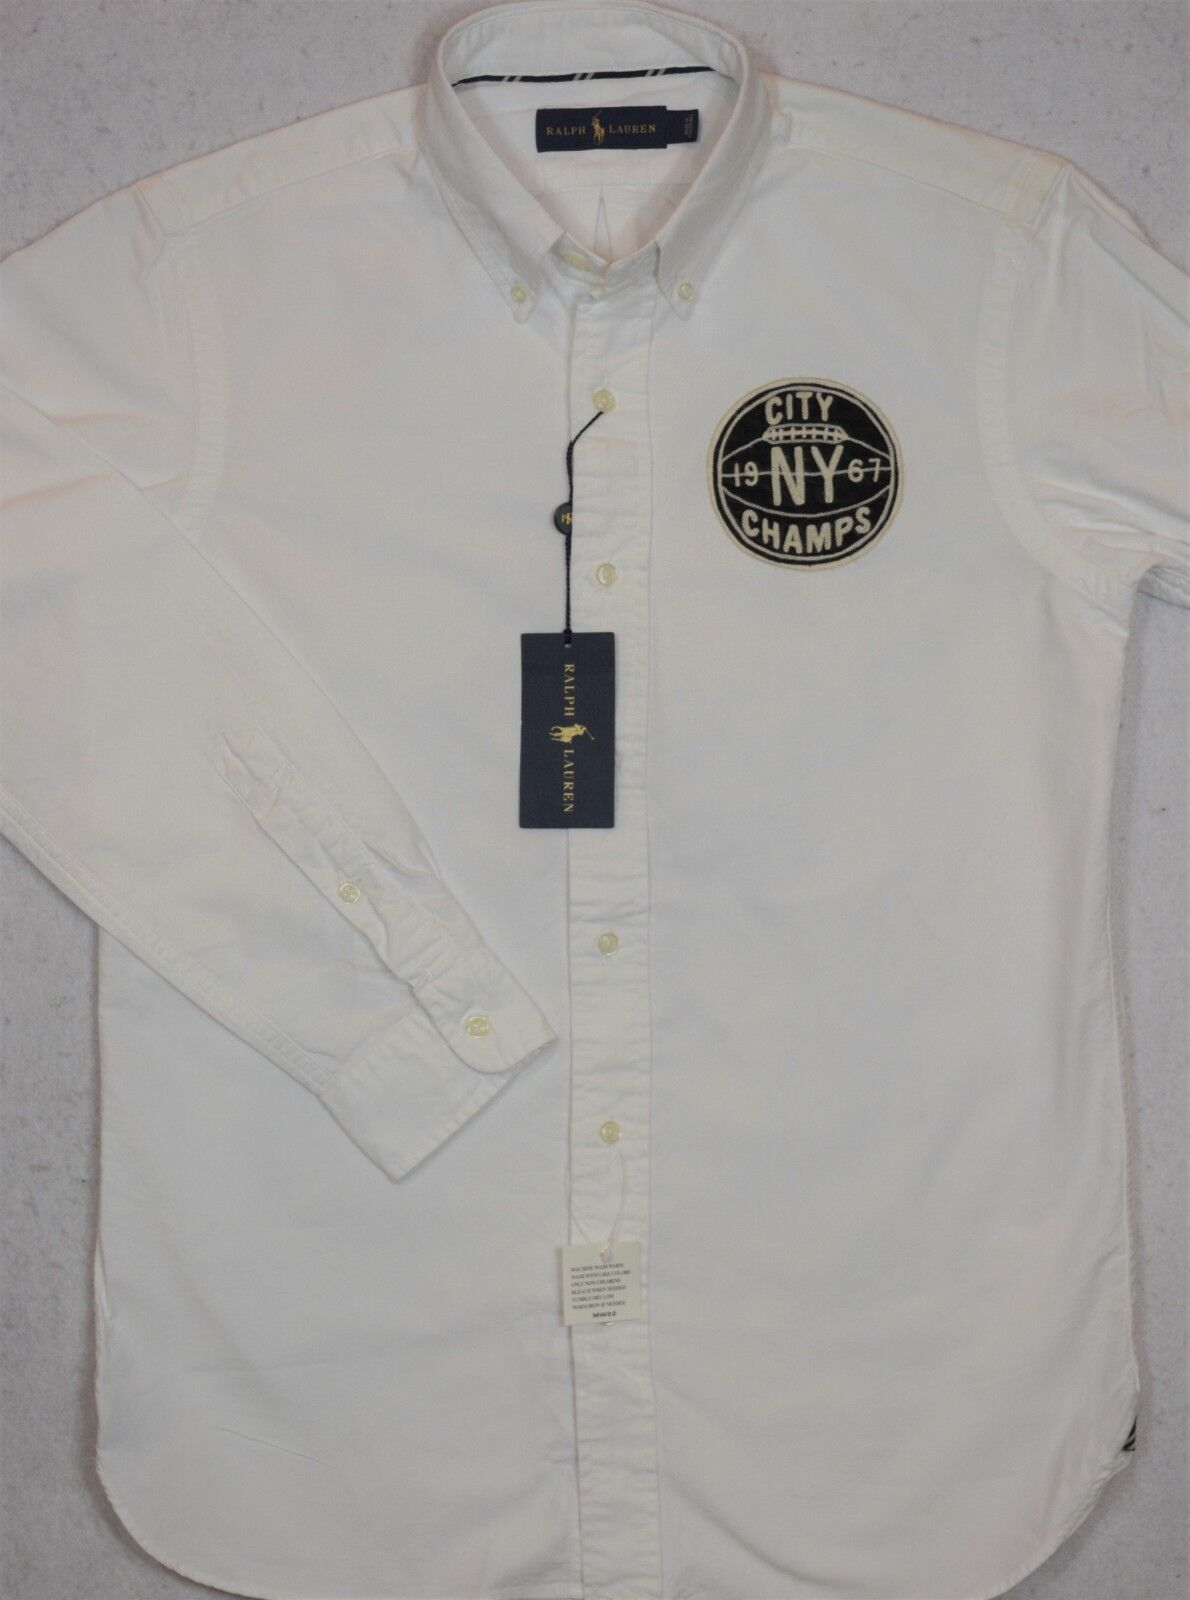 Ralph Lauren Shirt Brooklyn NY City Champs Oxford Button-Front S Small NWT